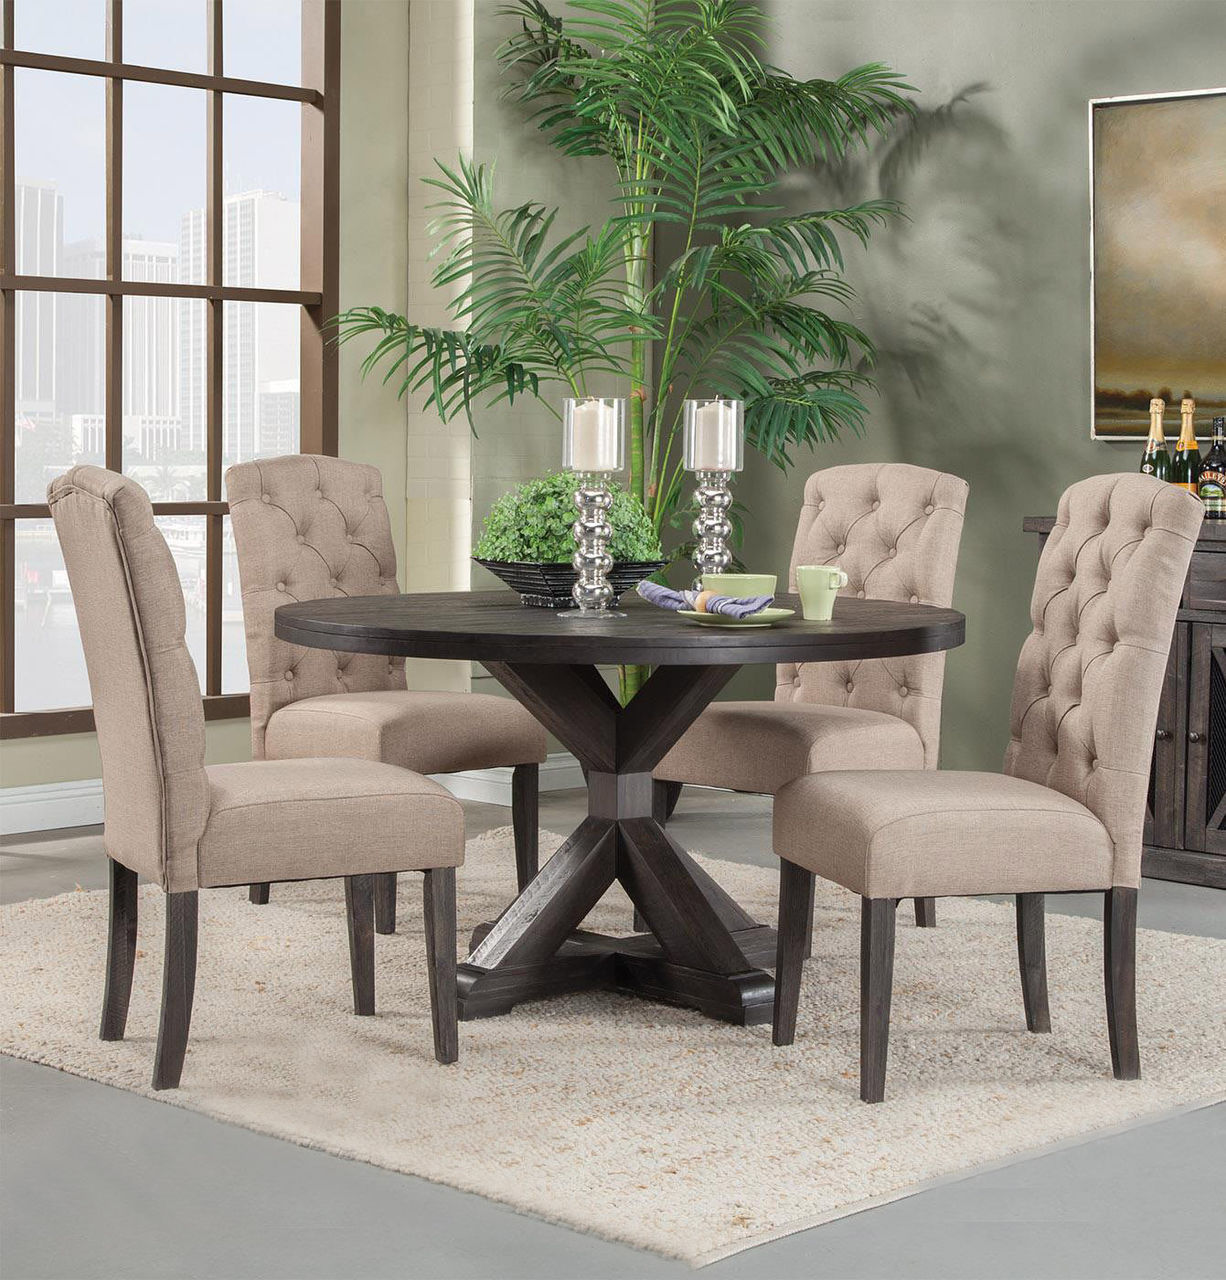 Alpine round dining table distressed transitional